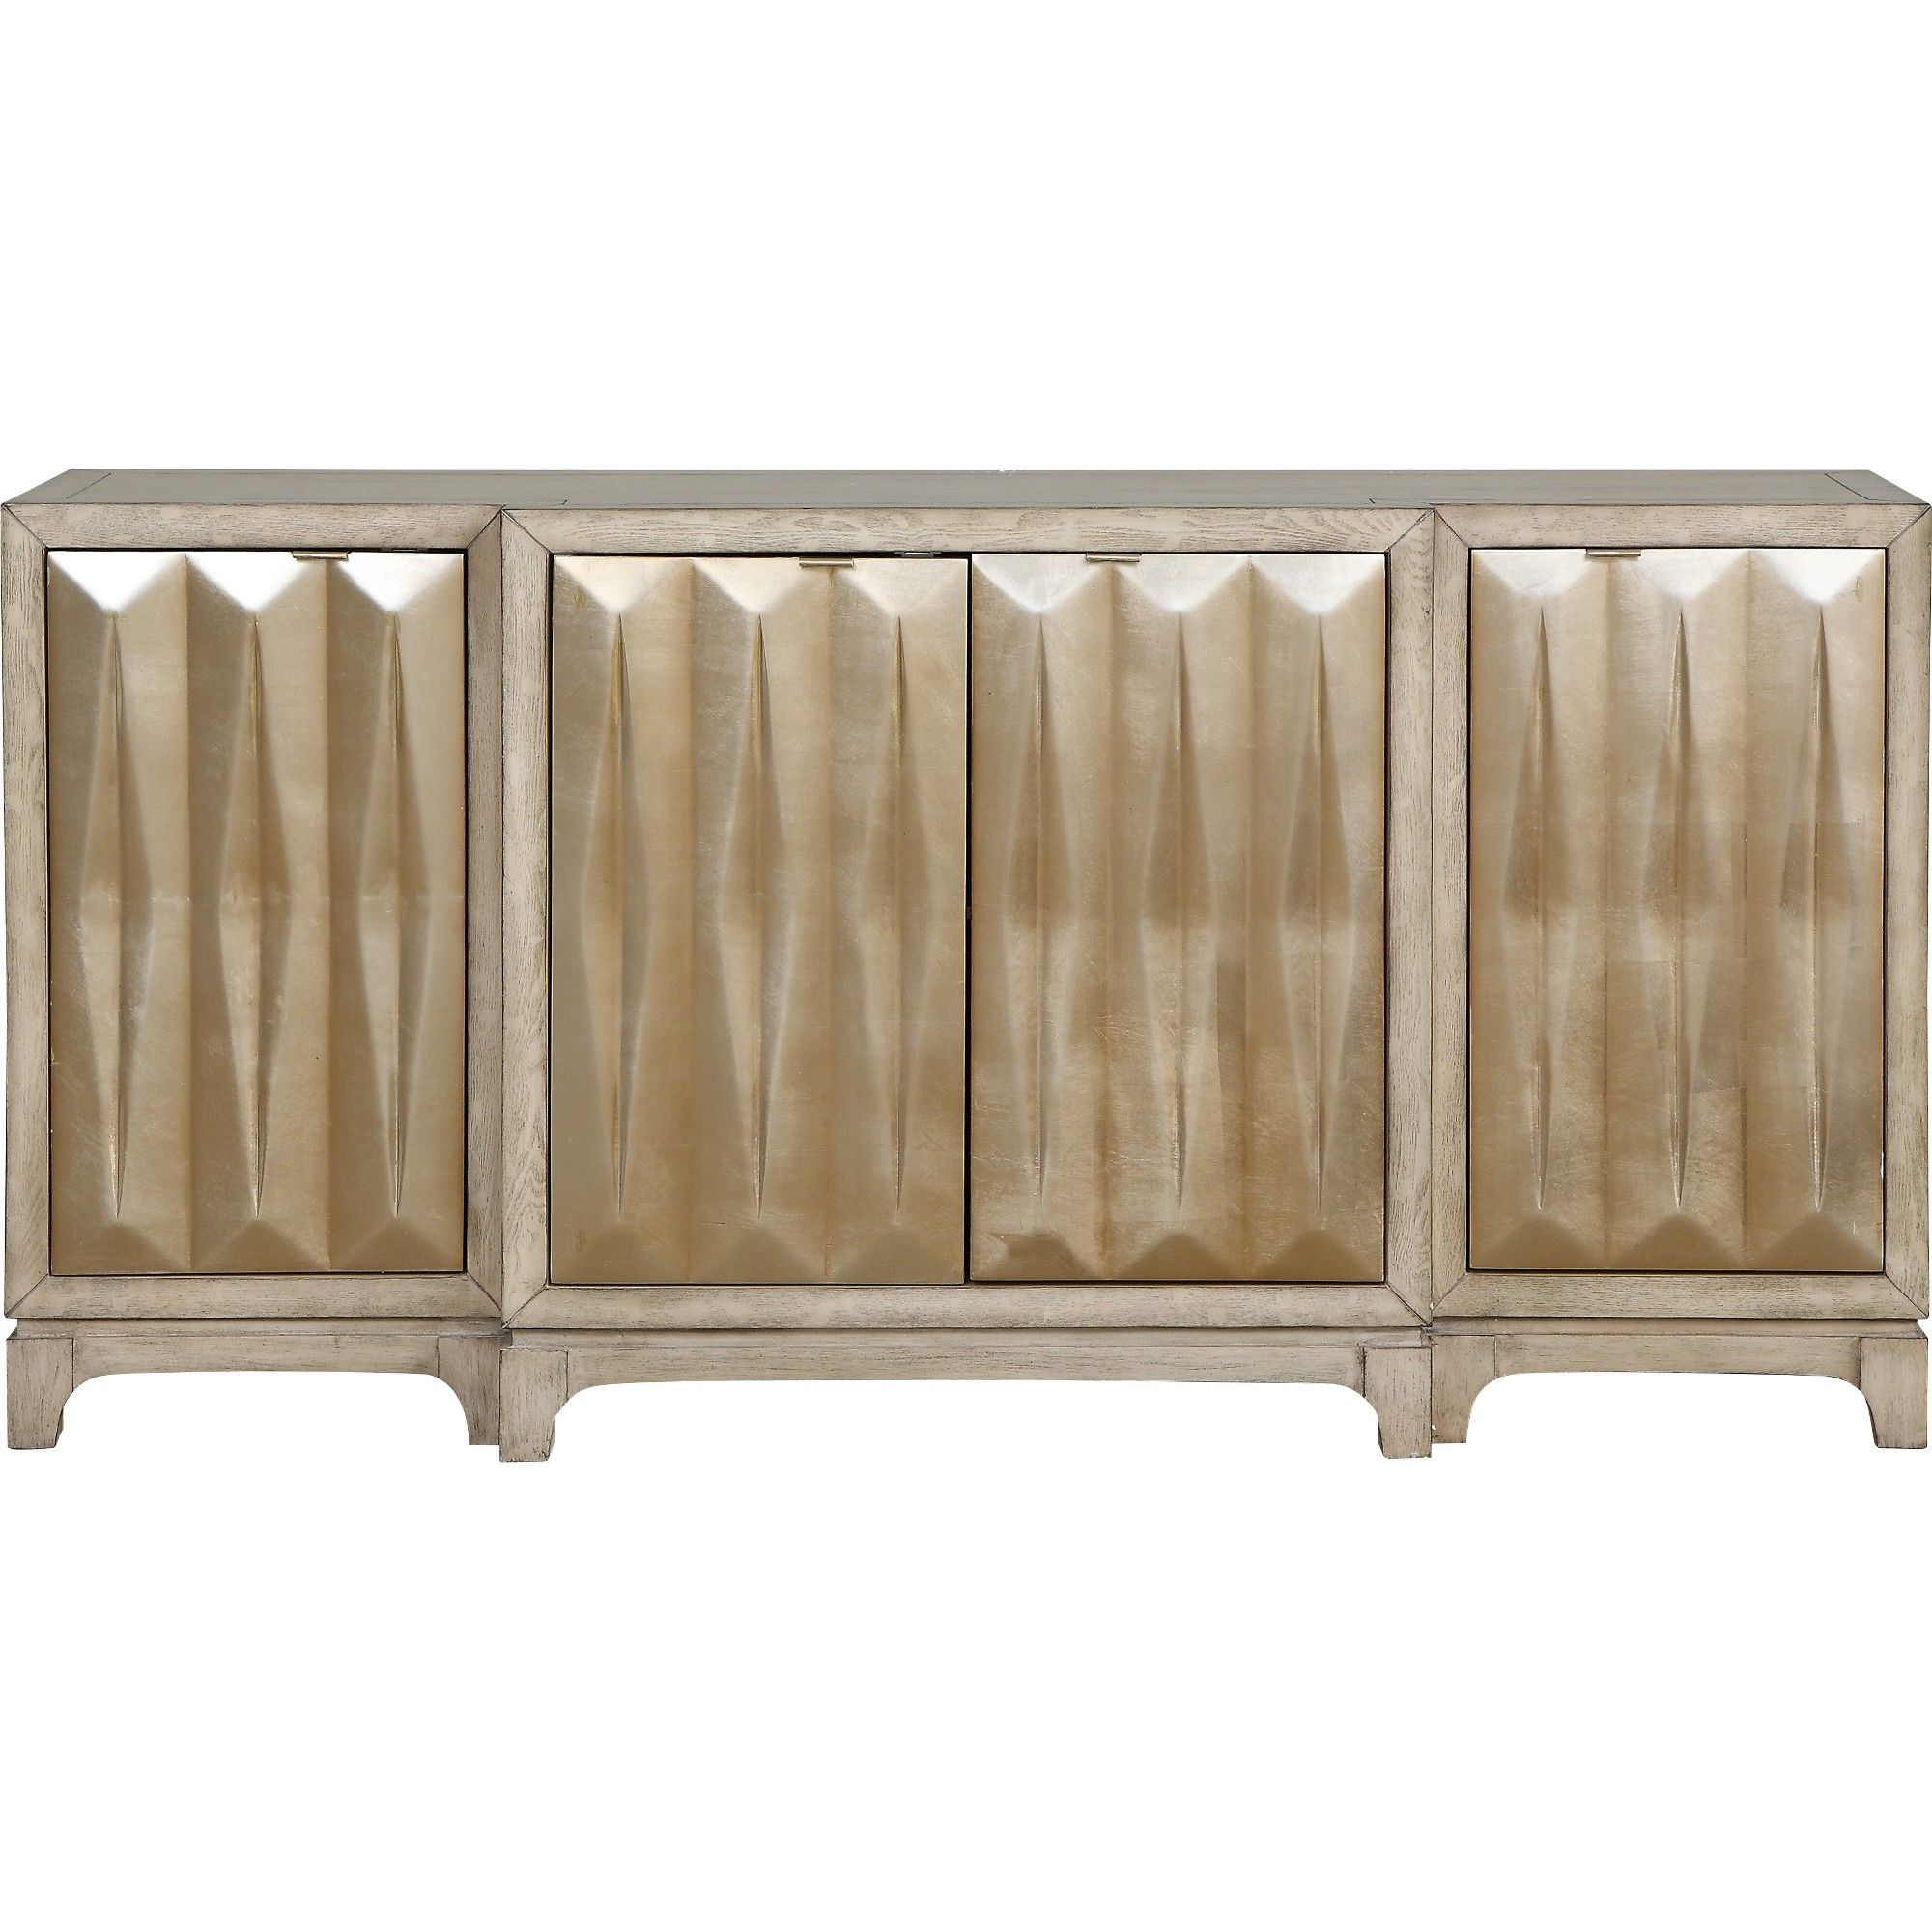 Well Liked Errol Media Credenzas Inside Treasure Trove Accents Luxe 4 Door Media Credenza White/gold (View 20 of 20)